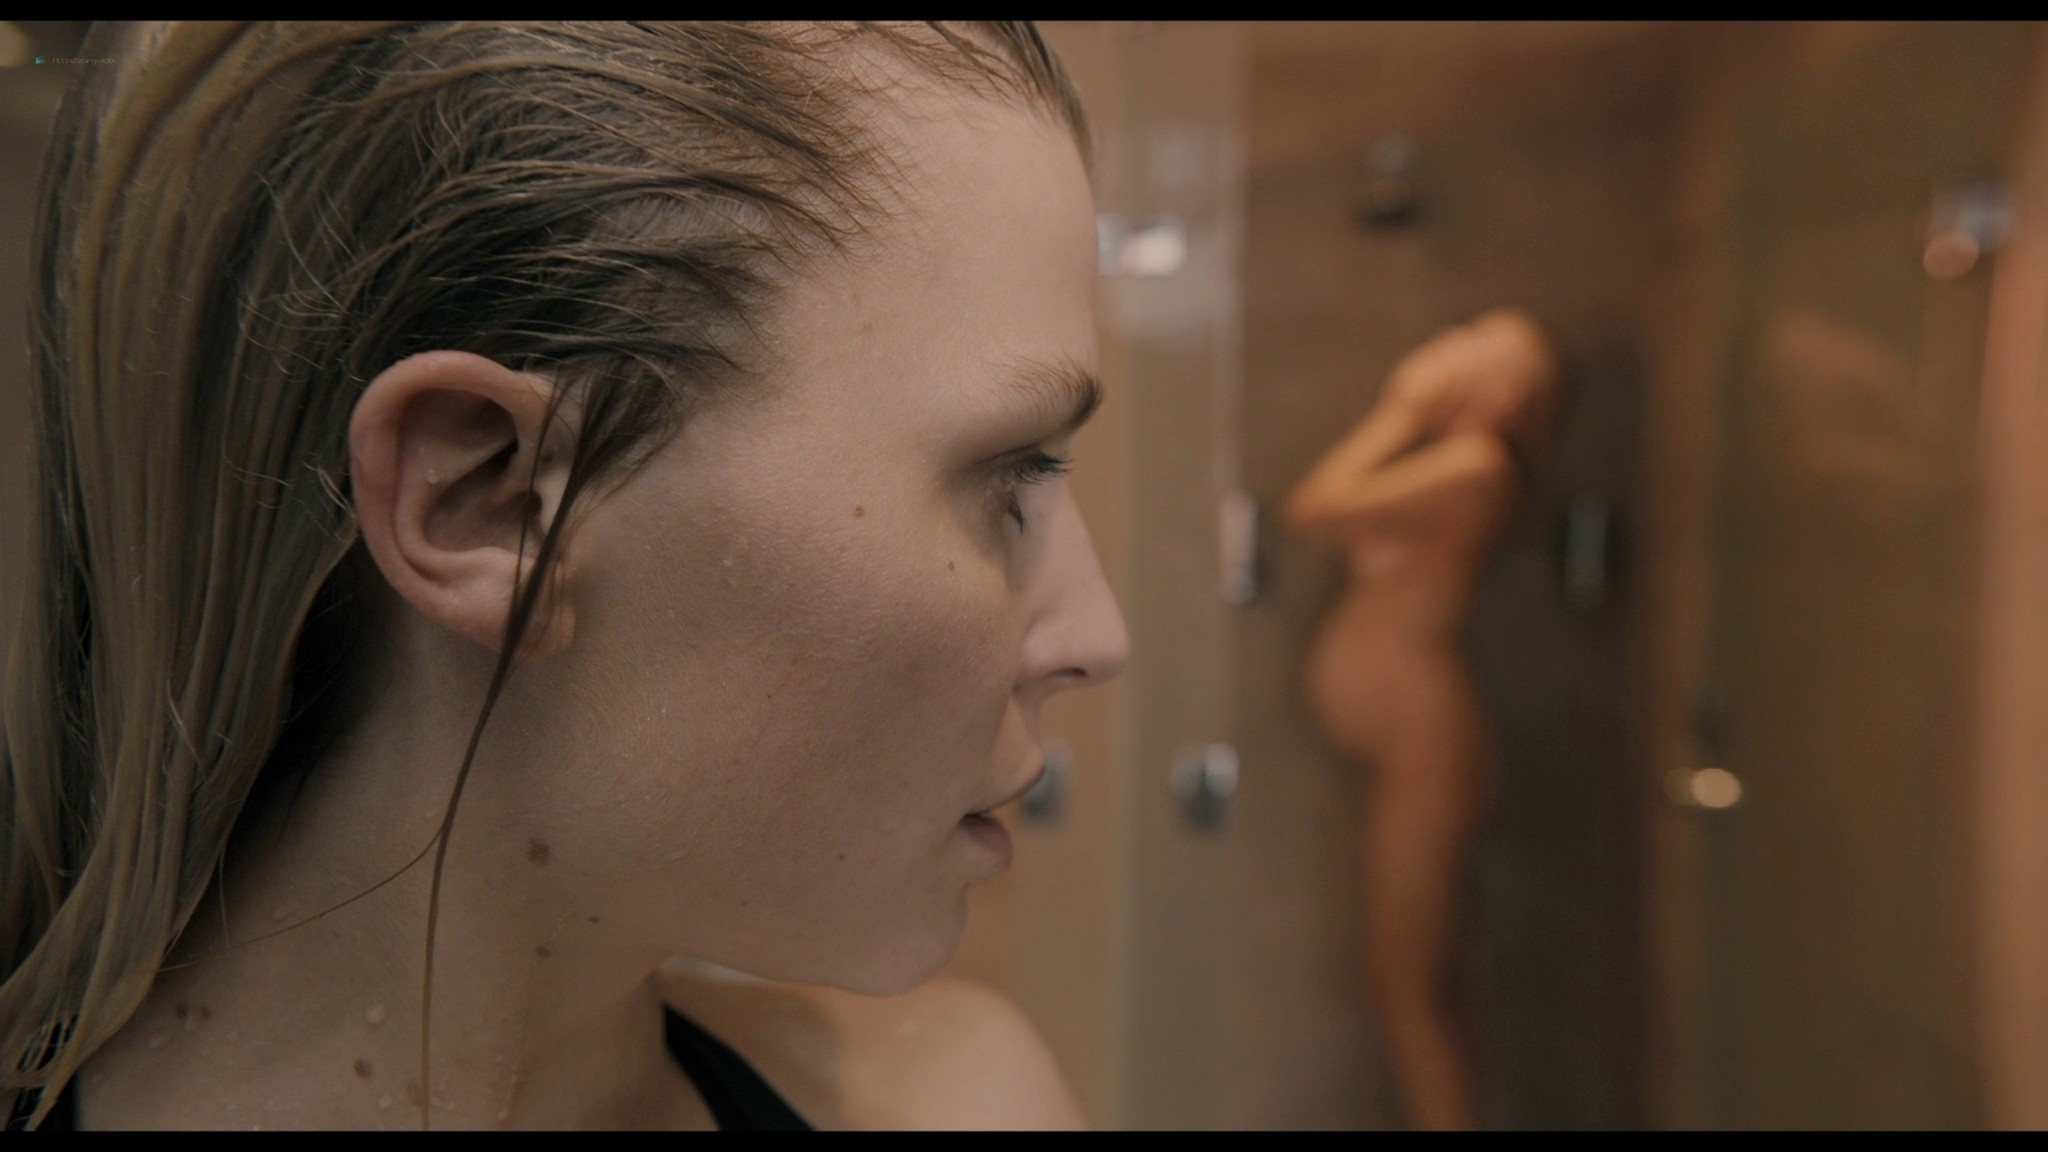 Laura Birn nude in shower Clémence Poésy hot some sex too - The Ones Below (UK-2015) HD 1080p BluRay (11)